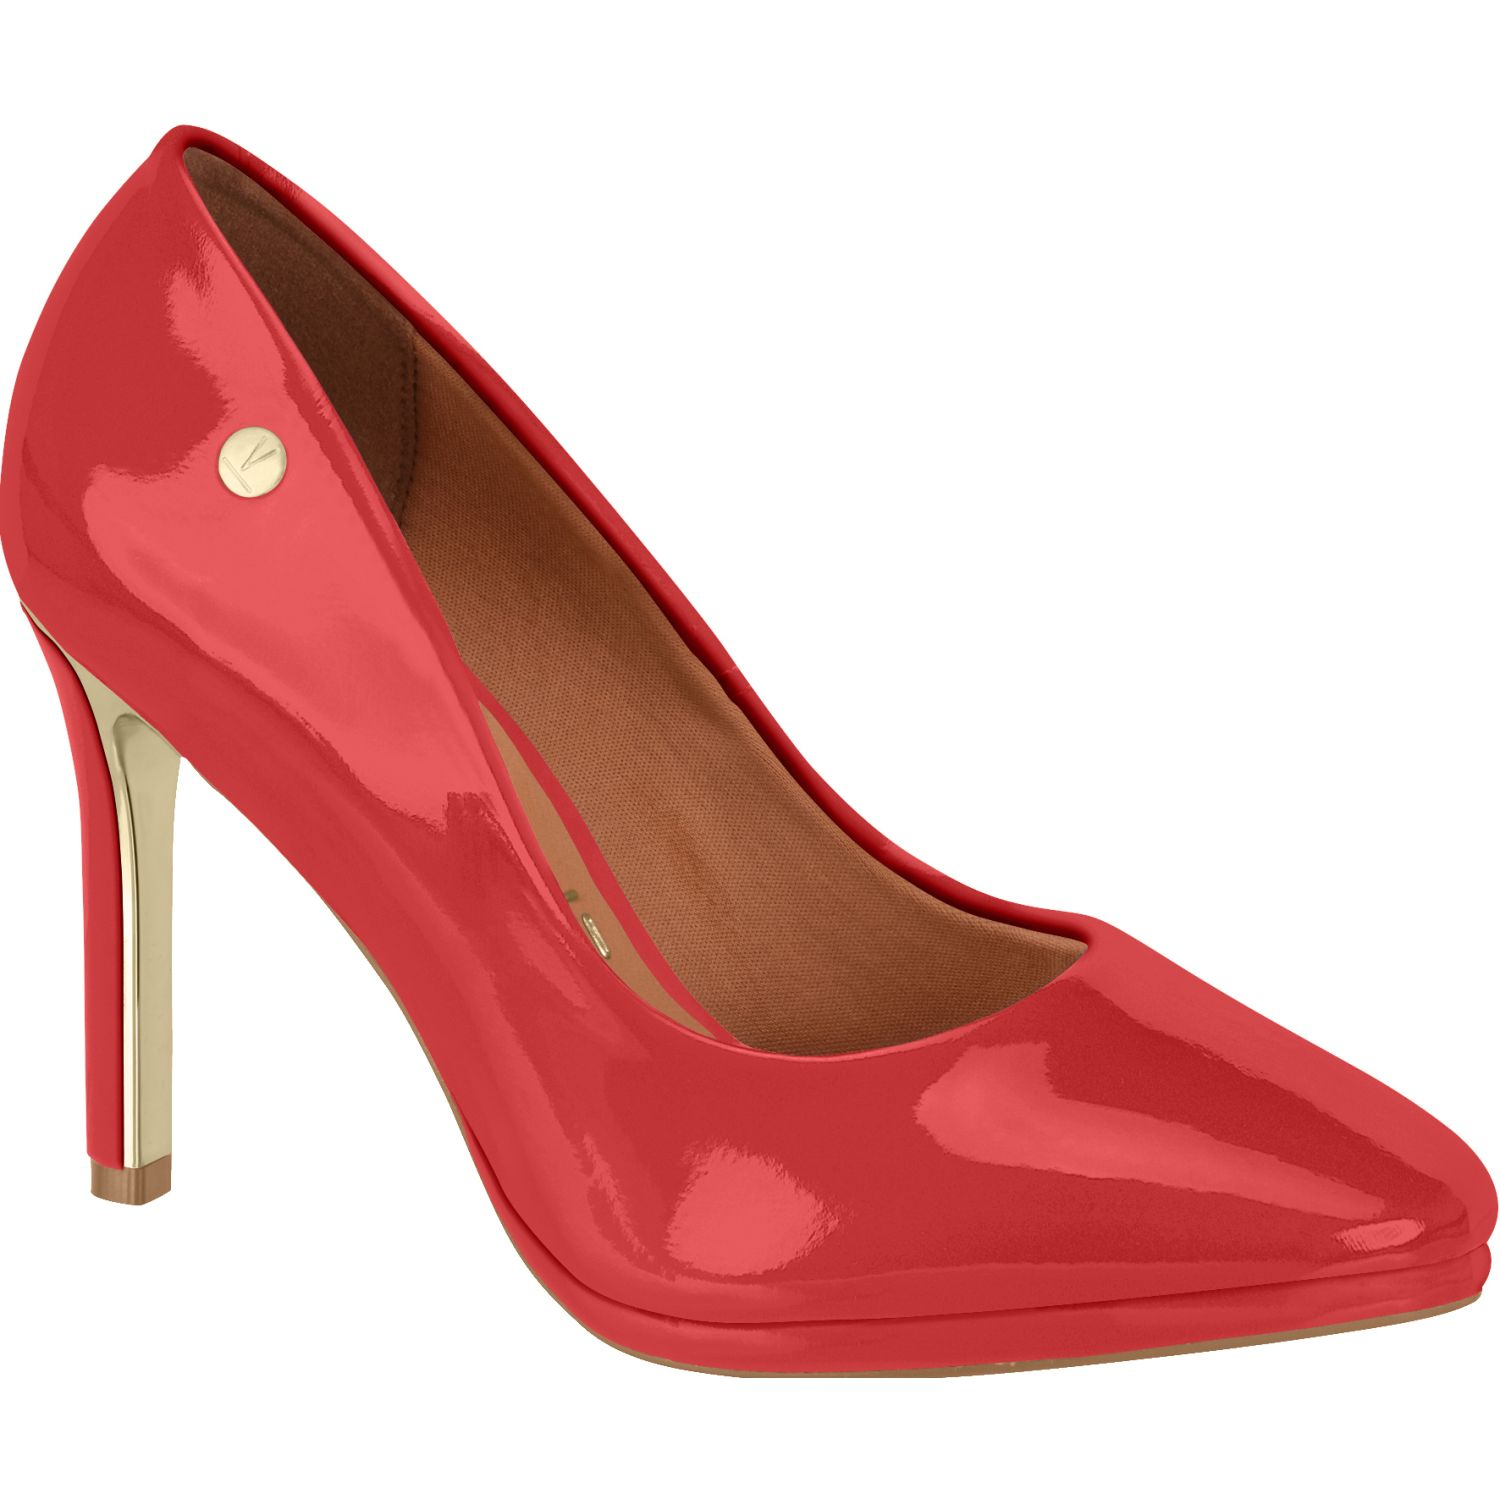 VIZZANO 1242.200.13488-46175 Rojo Estiletos y pumps